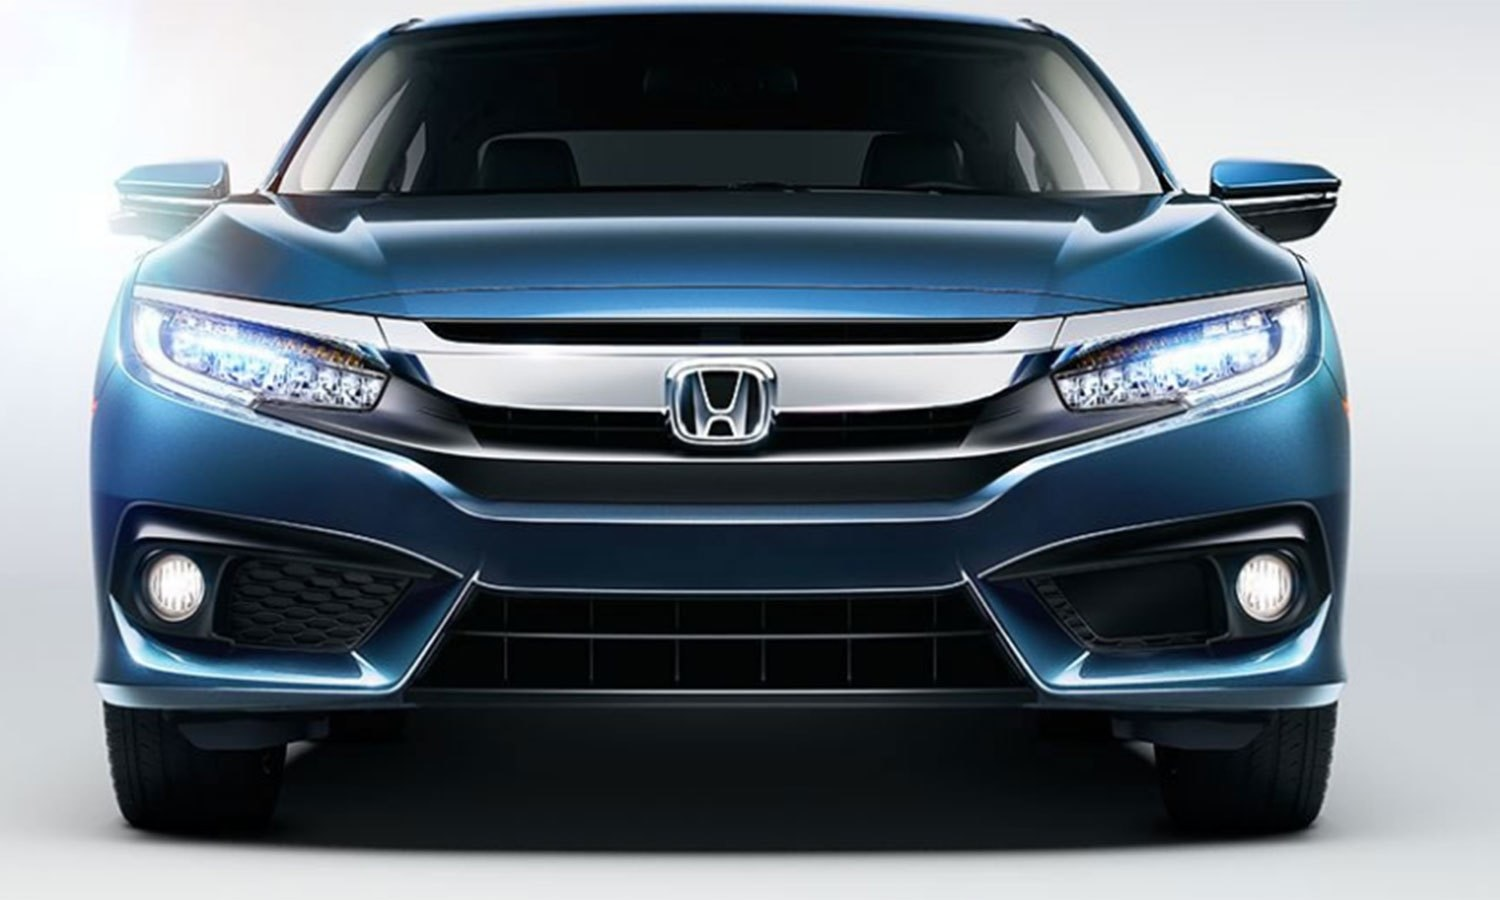 Taking the new Honda Civic for a test drive